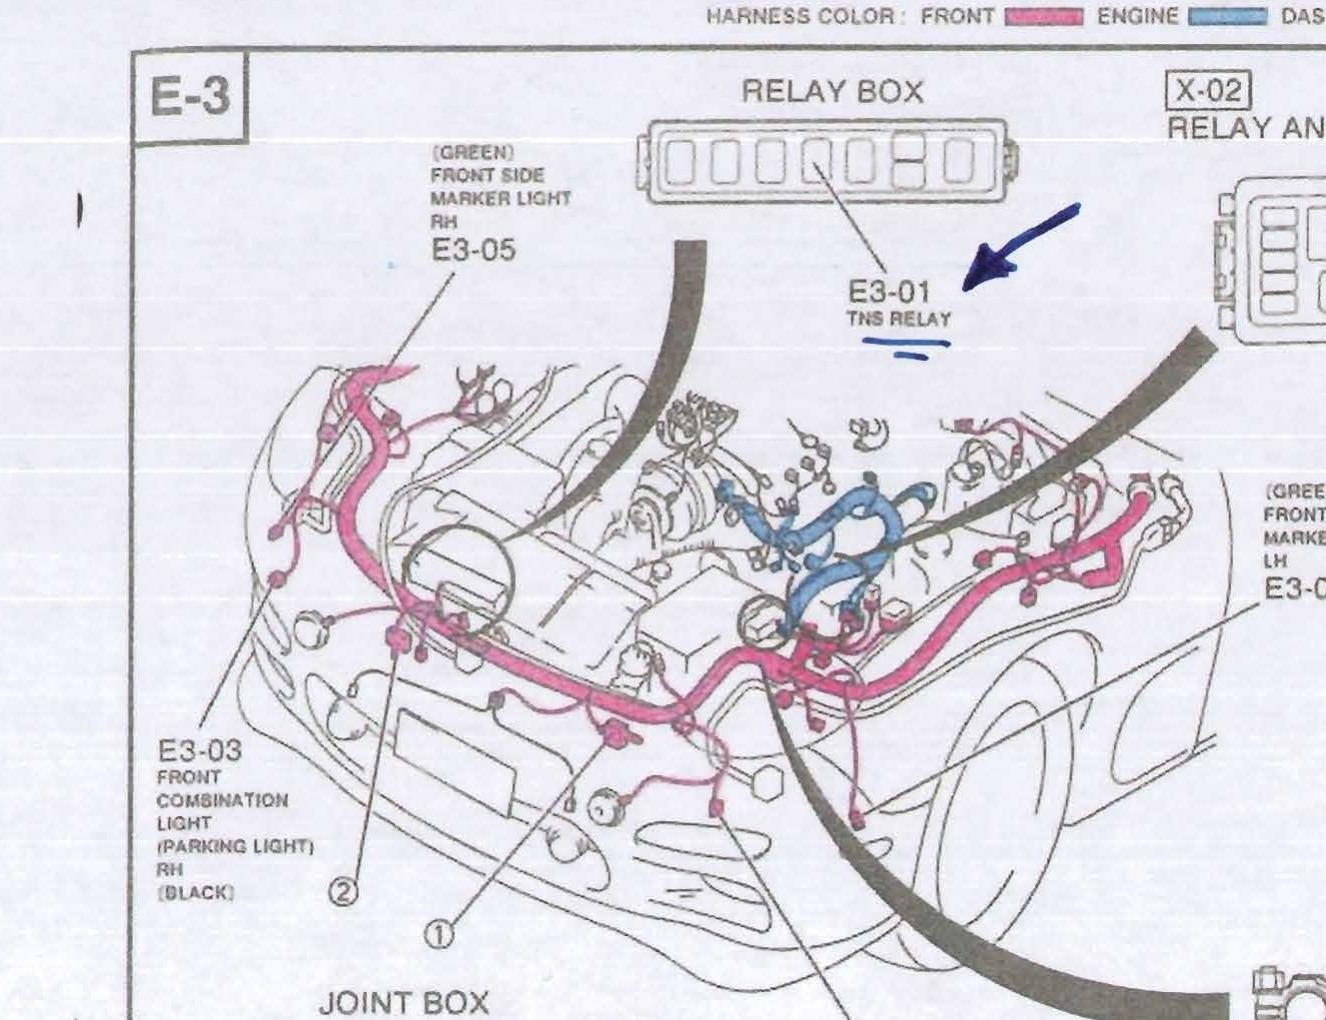 hight resolution of 2000 dodge durango infinity stereo wiring diagram 2005 britishpanto with turn signal trouble tns relay ii jpg